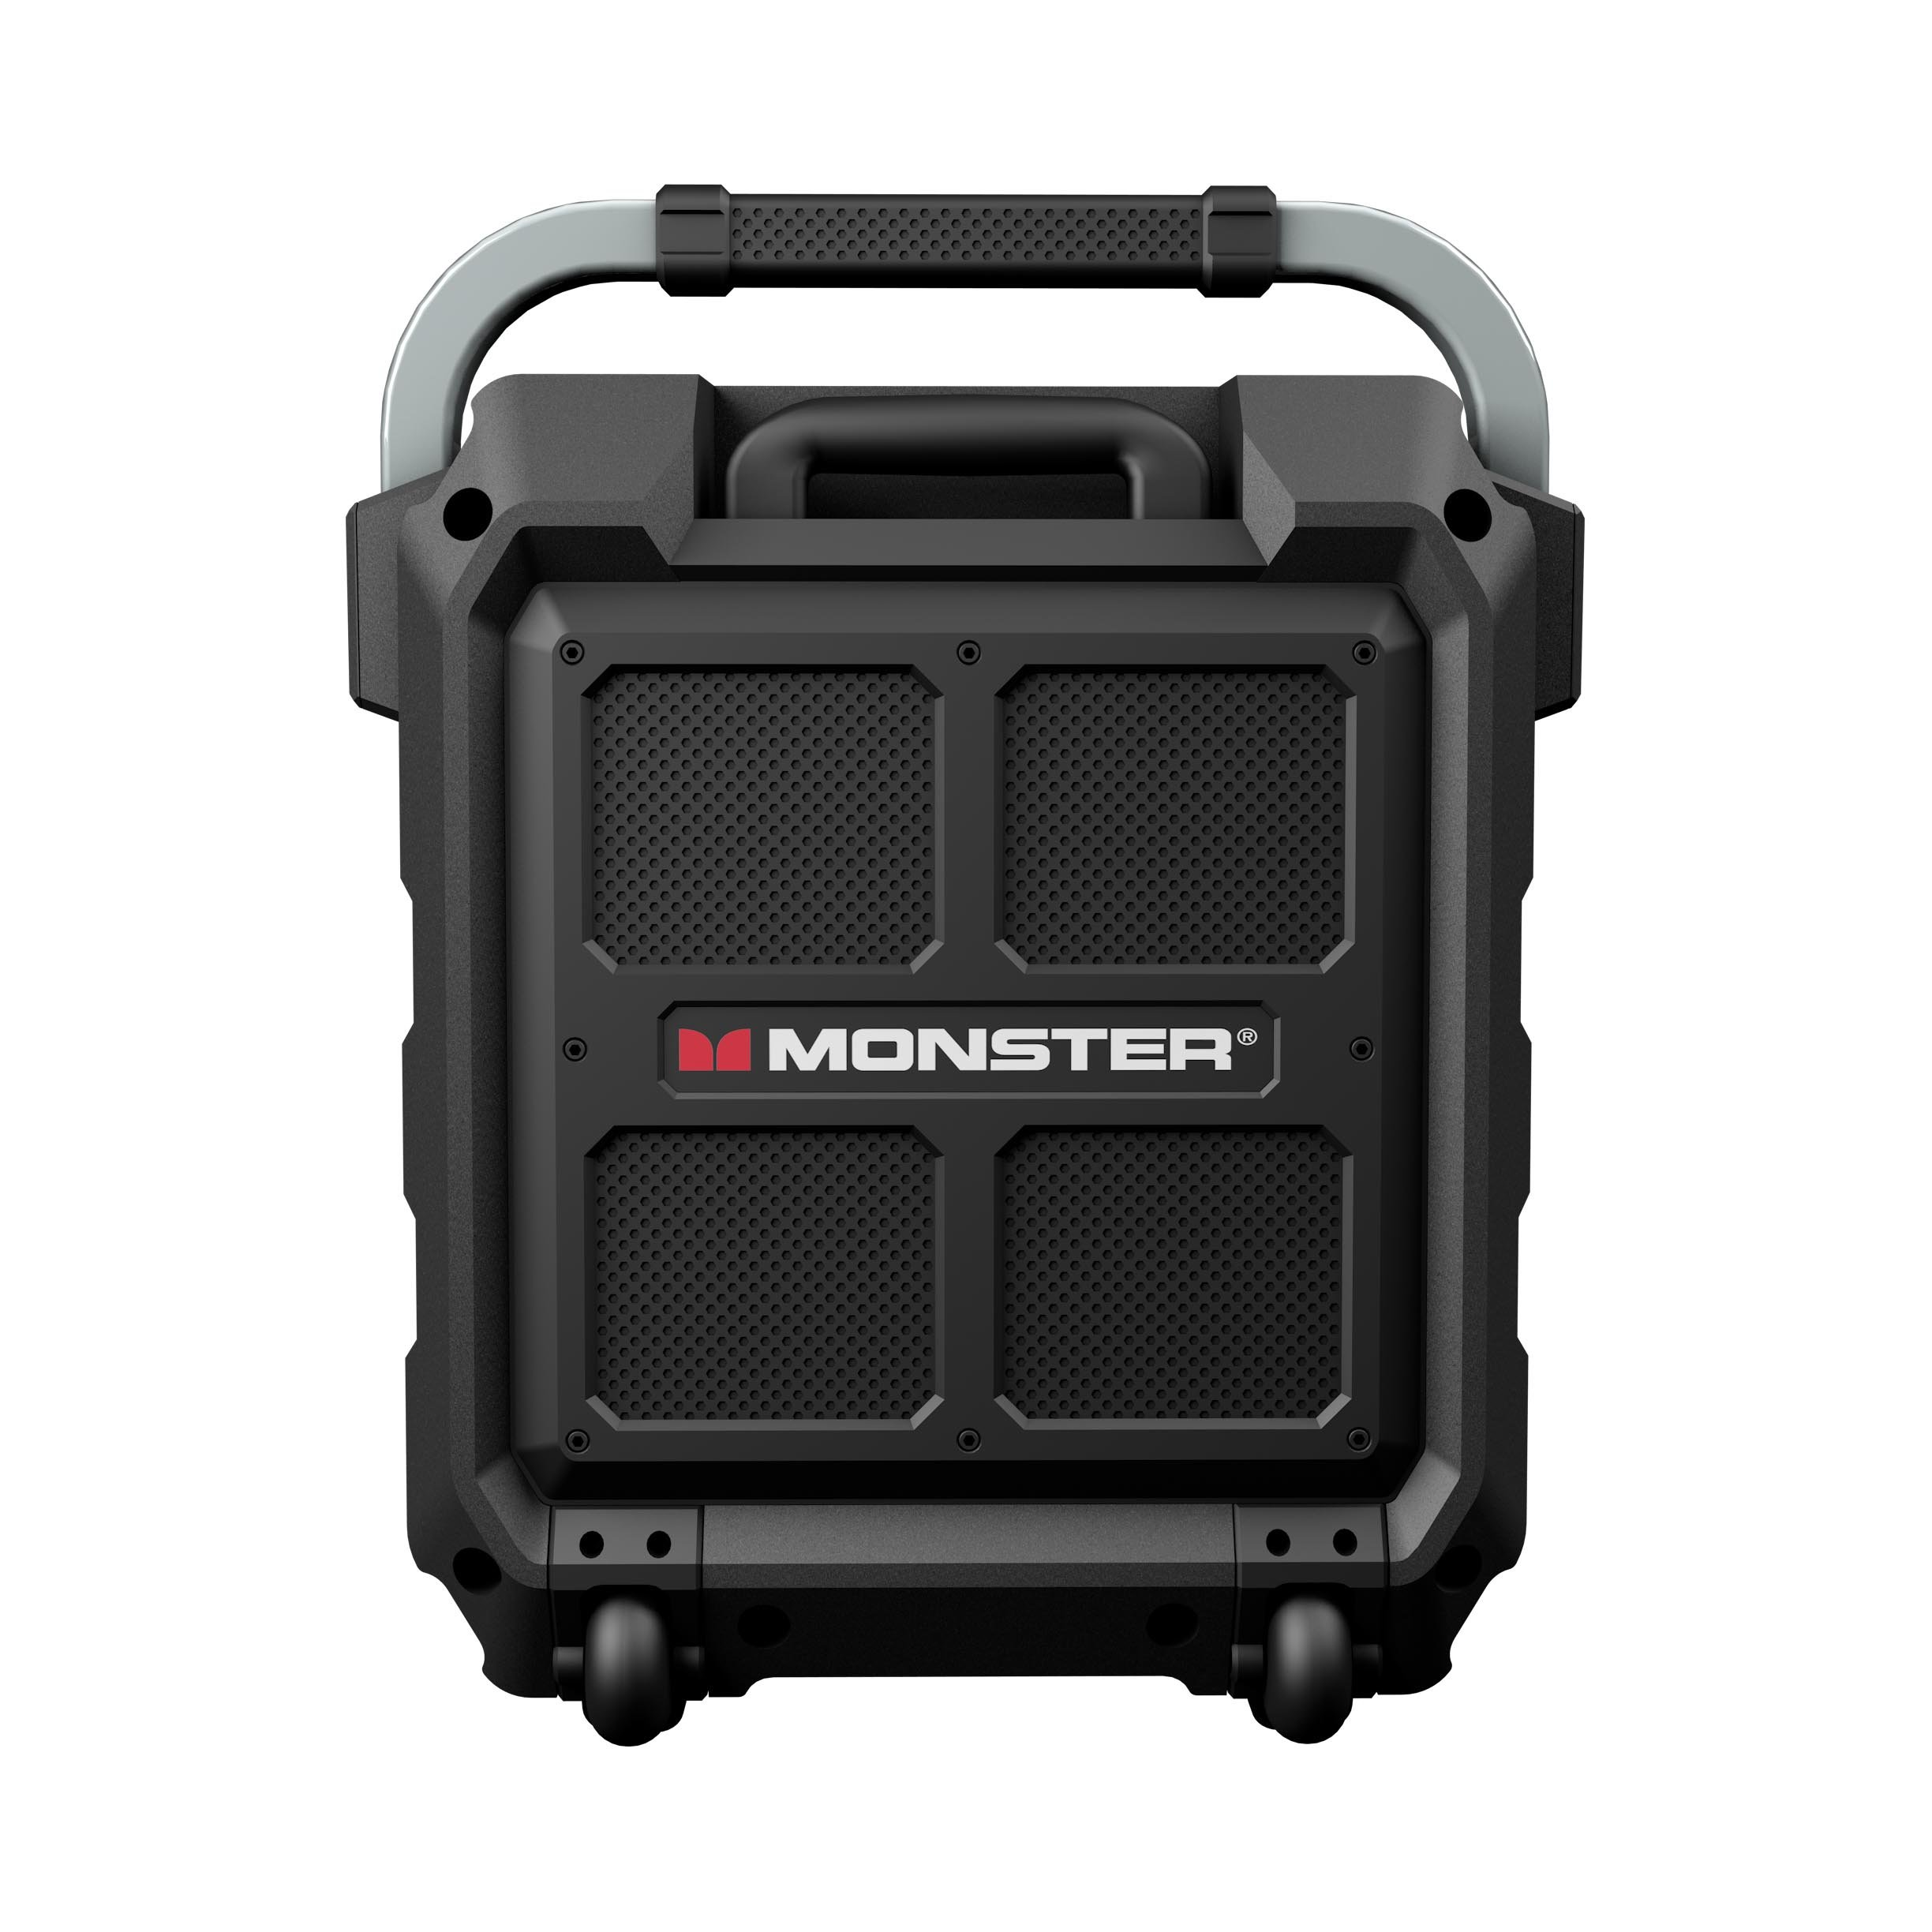 Monster Rockin' Roller 2 | 80 Watts, 100 Hour High Performance Water Resistant Outdoor/Indoor Wireless Bluetooth Speaker, Night View LED (Black) by Monster